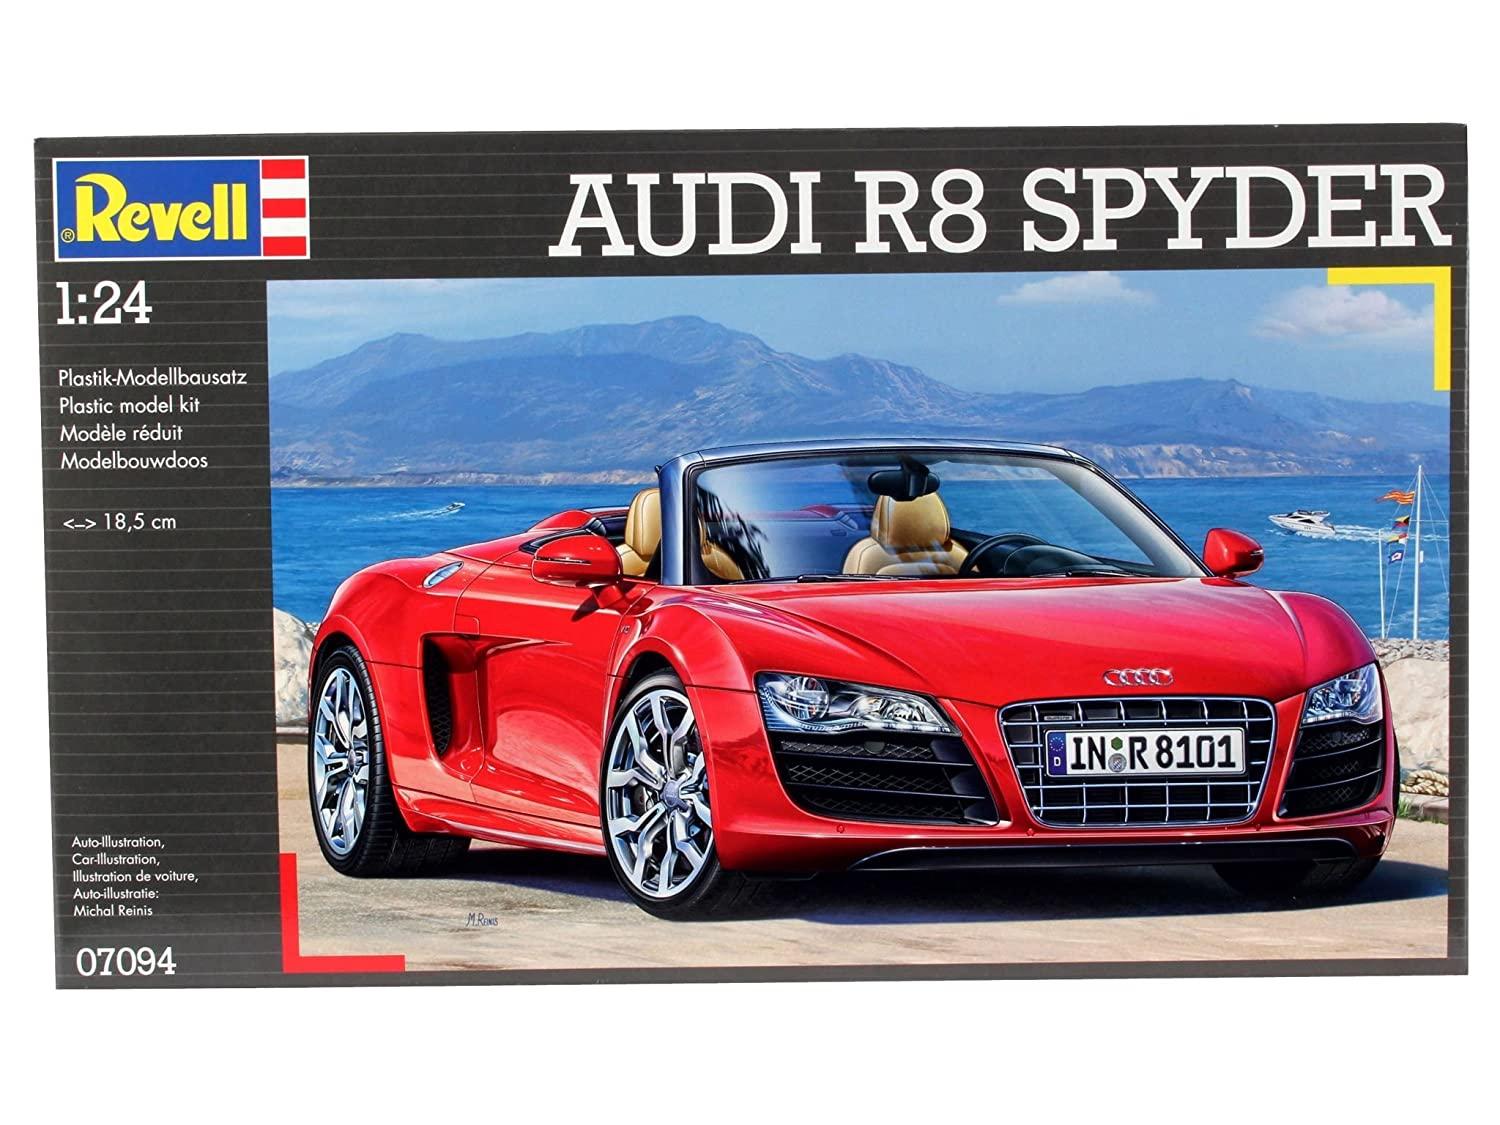 Amazon.com: Revell 1:24 Scale 07094 Audi R8 Spyder Vehicle ...